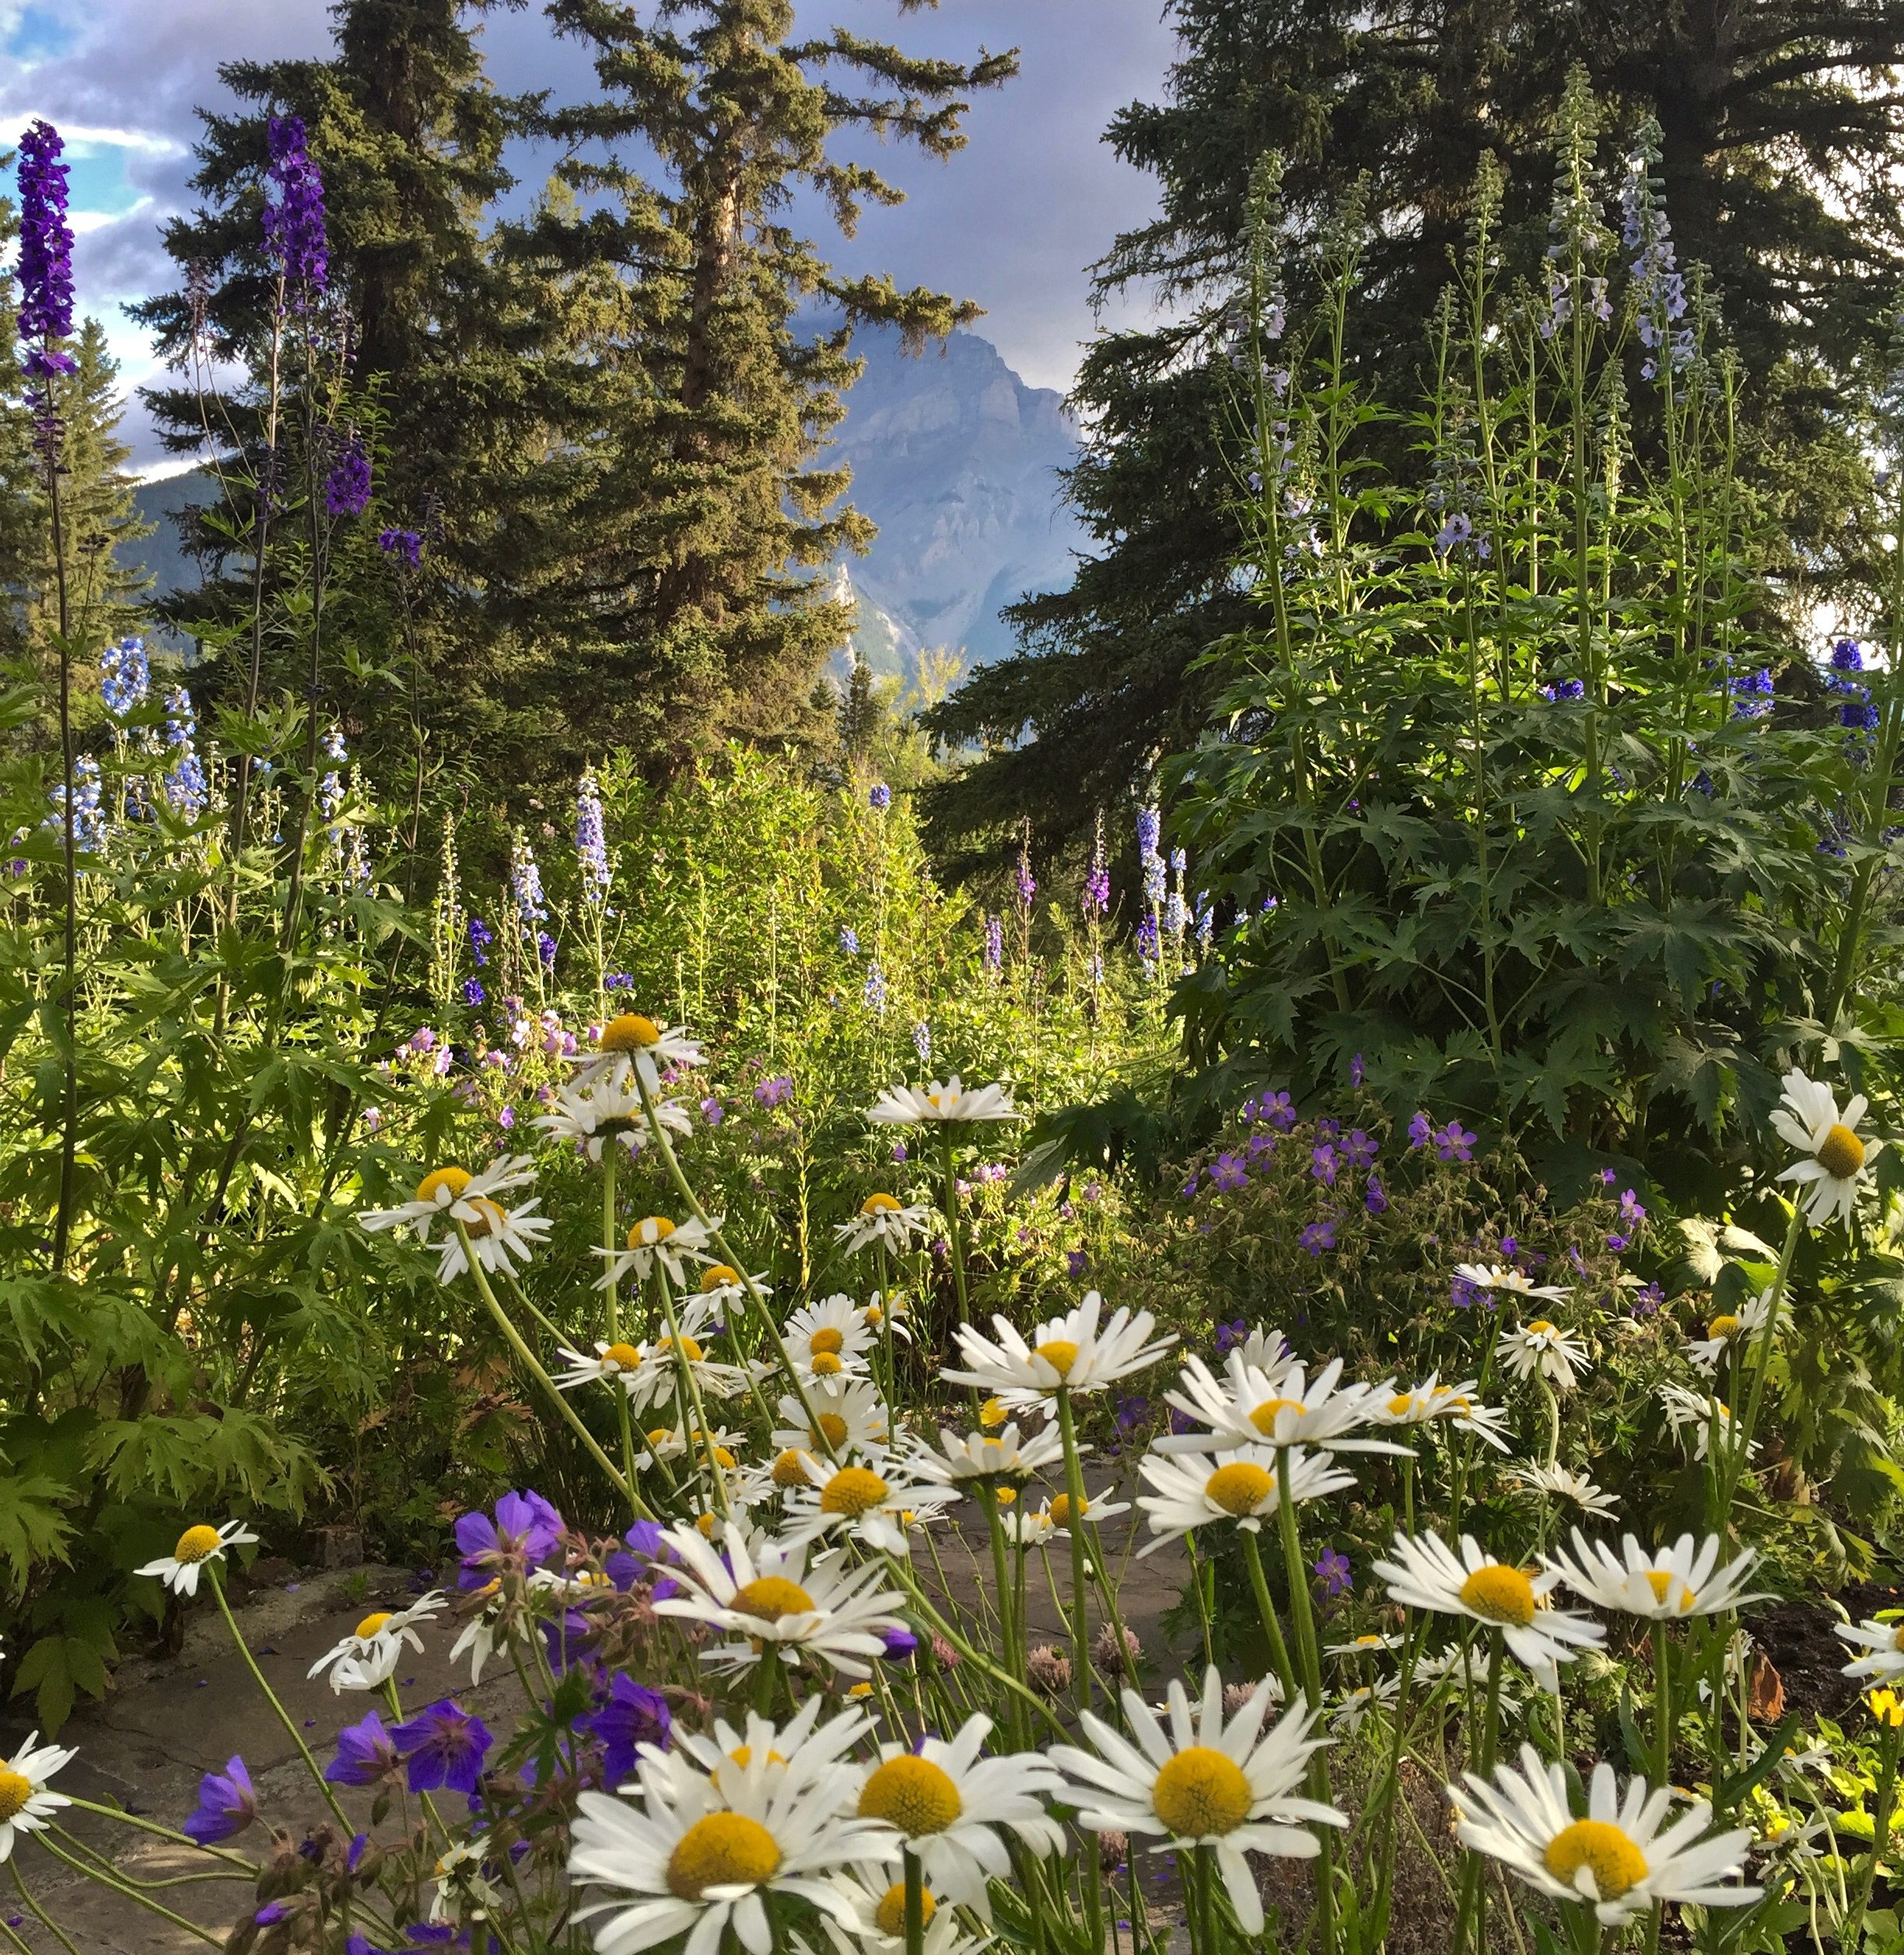 A garden teeming with daisies and other flowers against a background of pine trees and mountains.